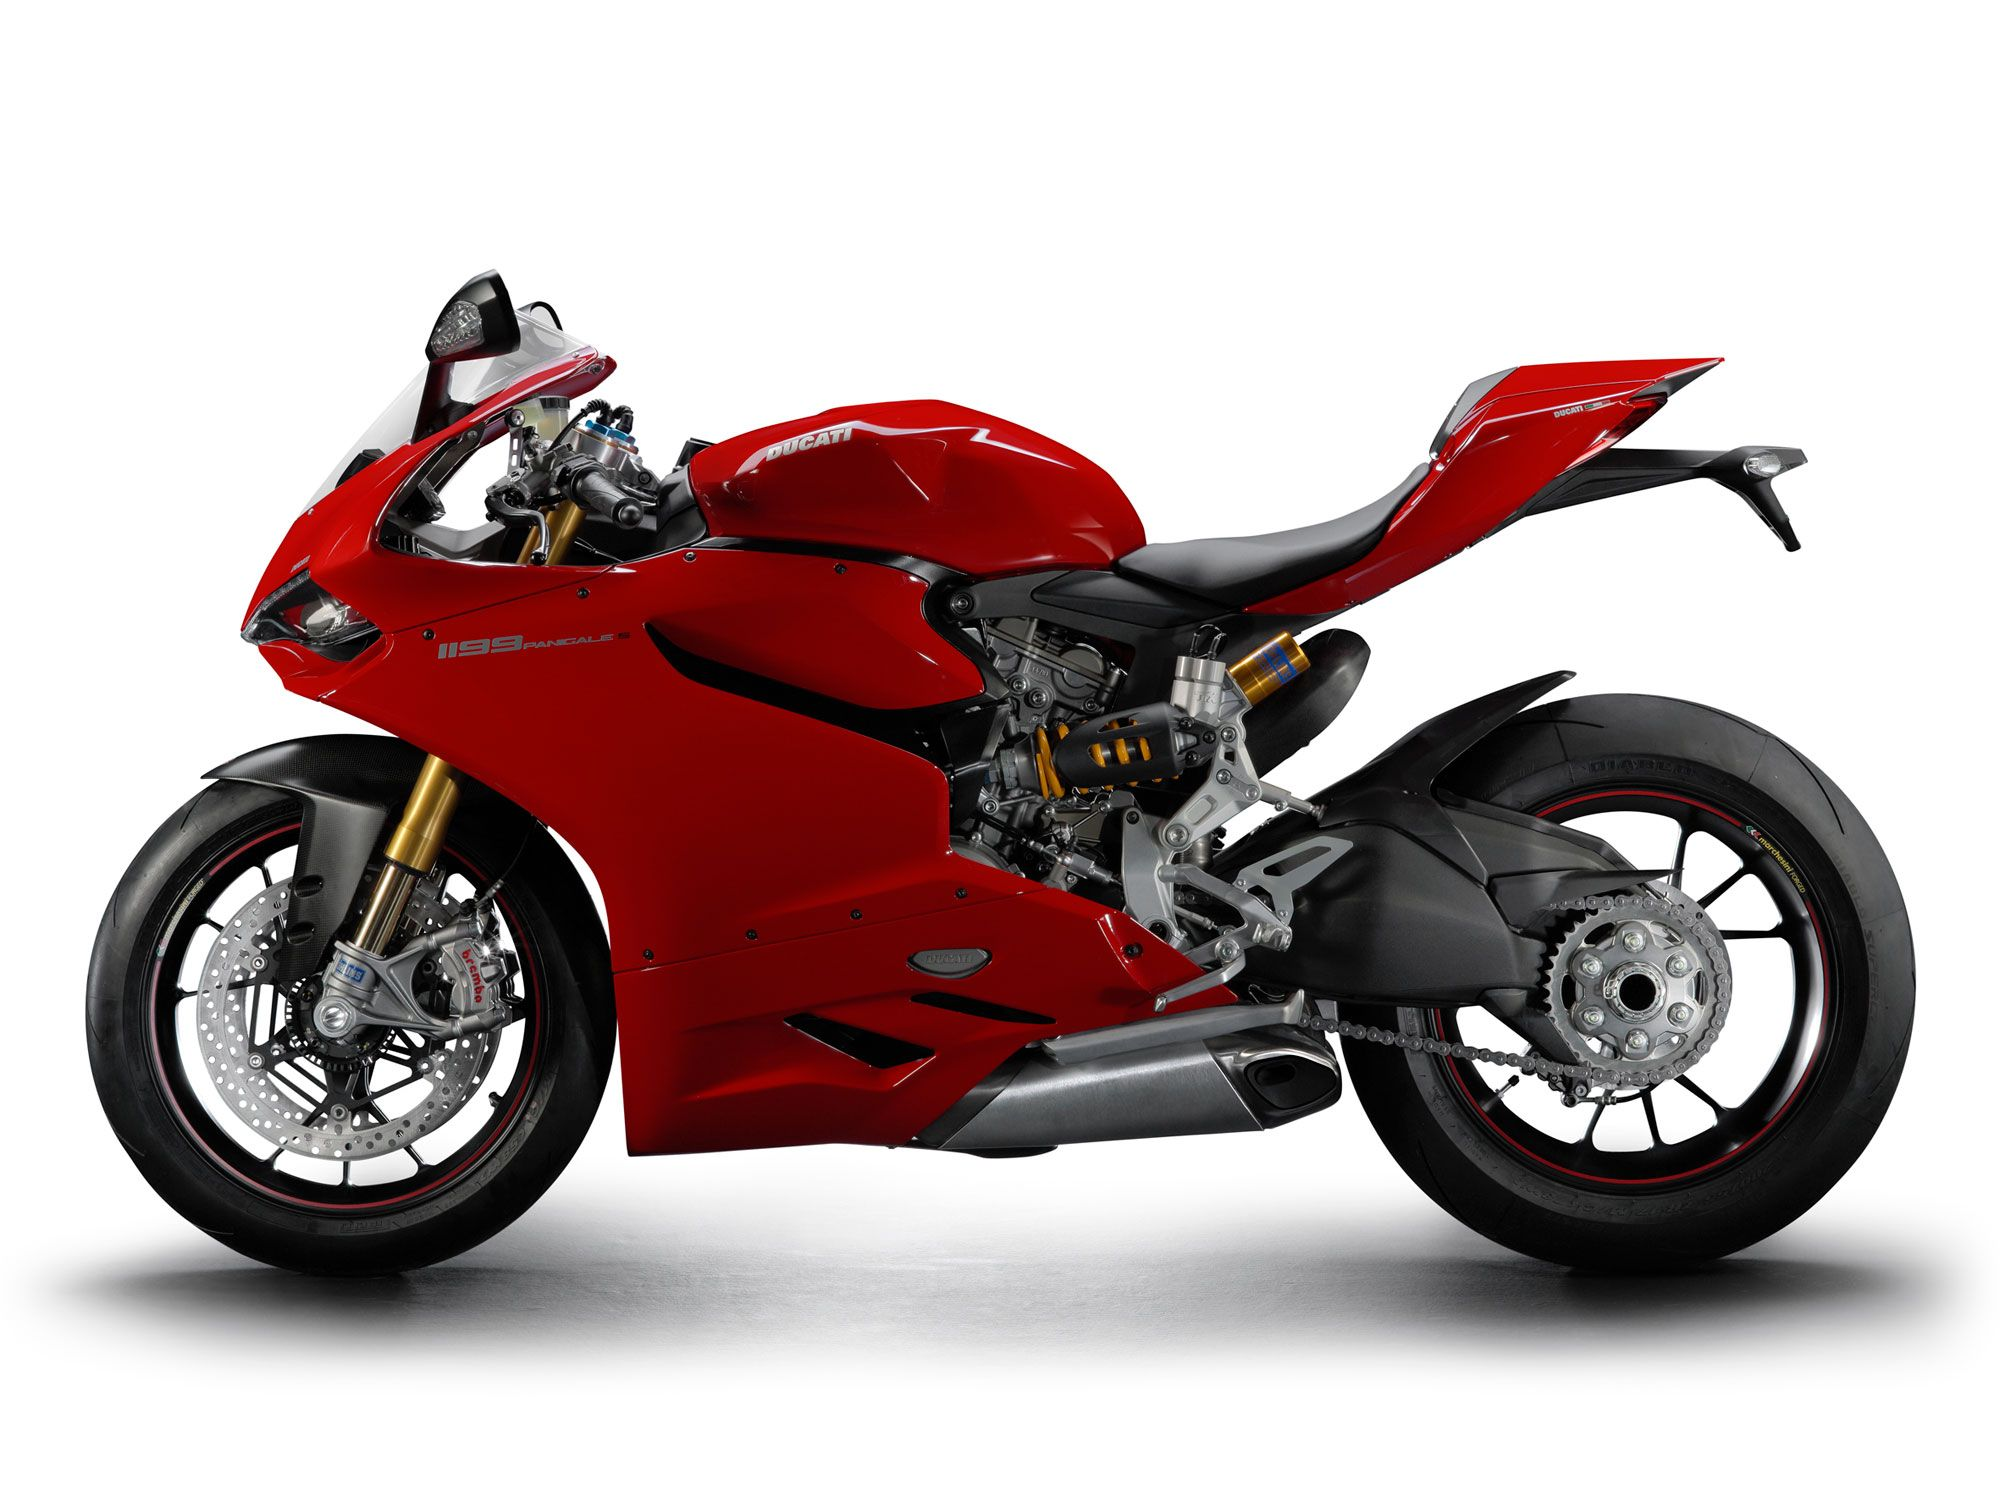 2013 Ducati Superbike 1199 Panigale S Motorcycles Pinterest